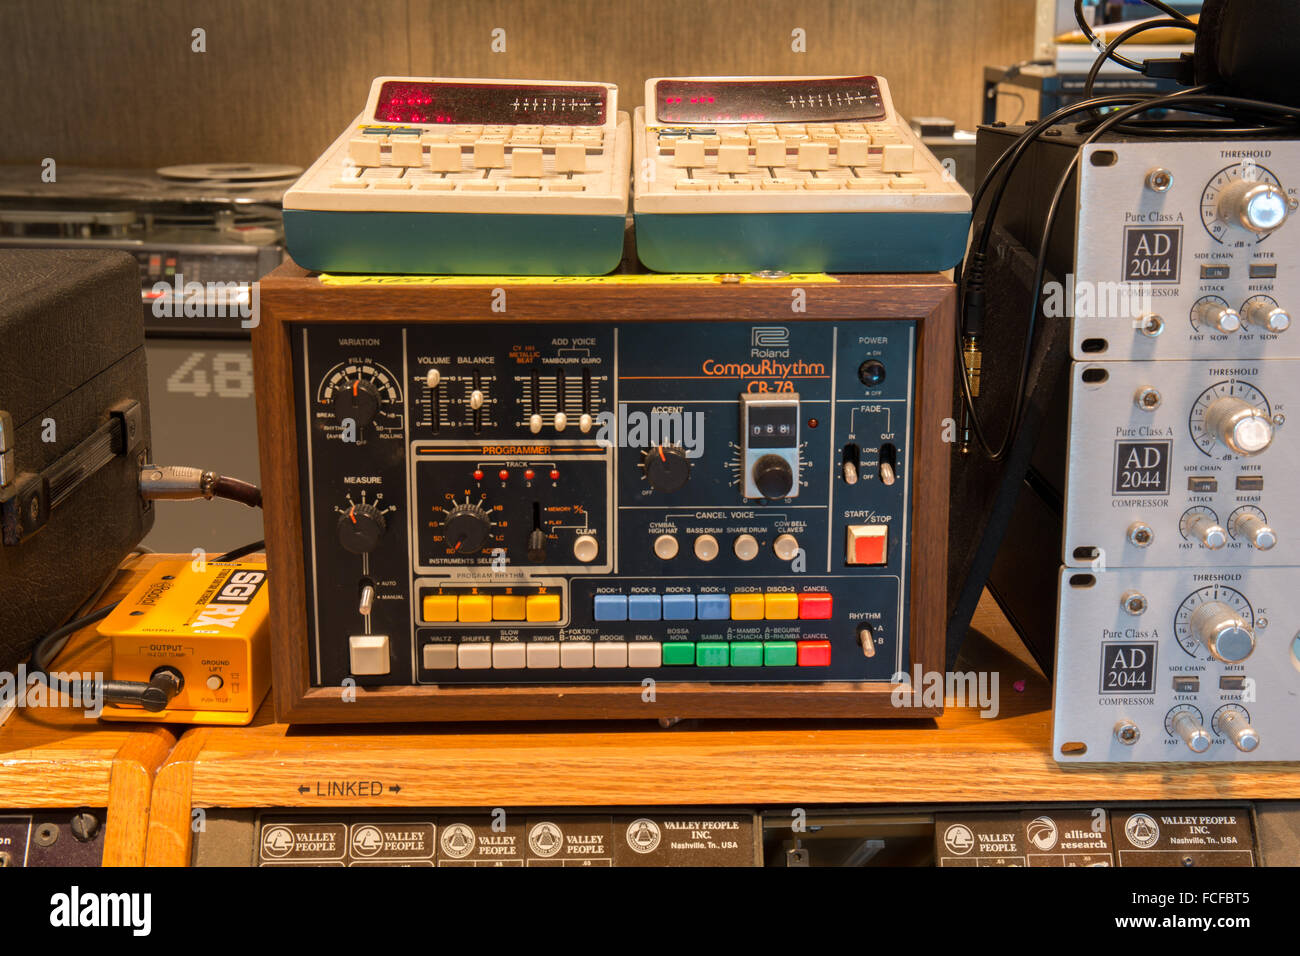 Roland compurhythm cr-78 drum machine on top of an effects rack in a recording studio - Stock Image